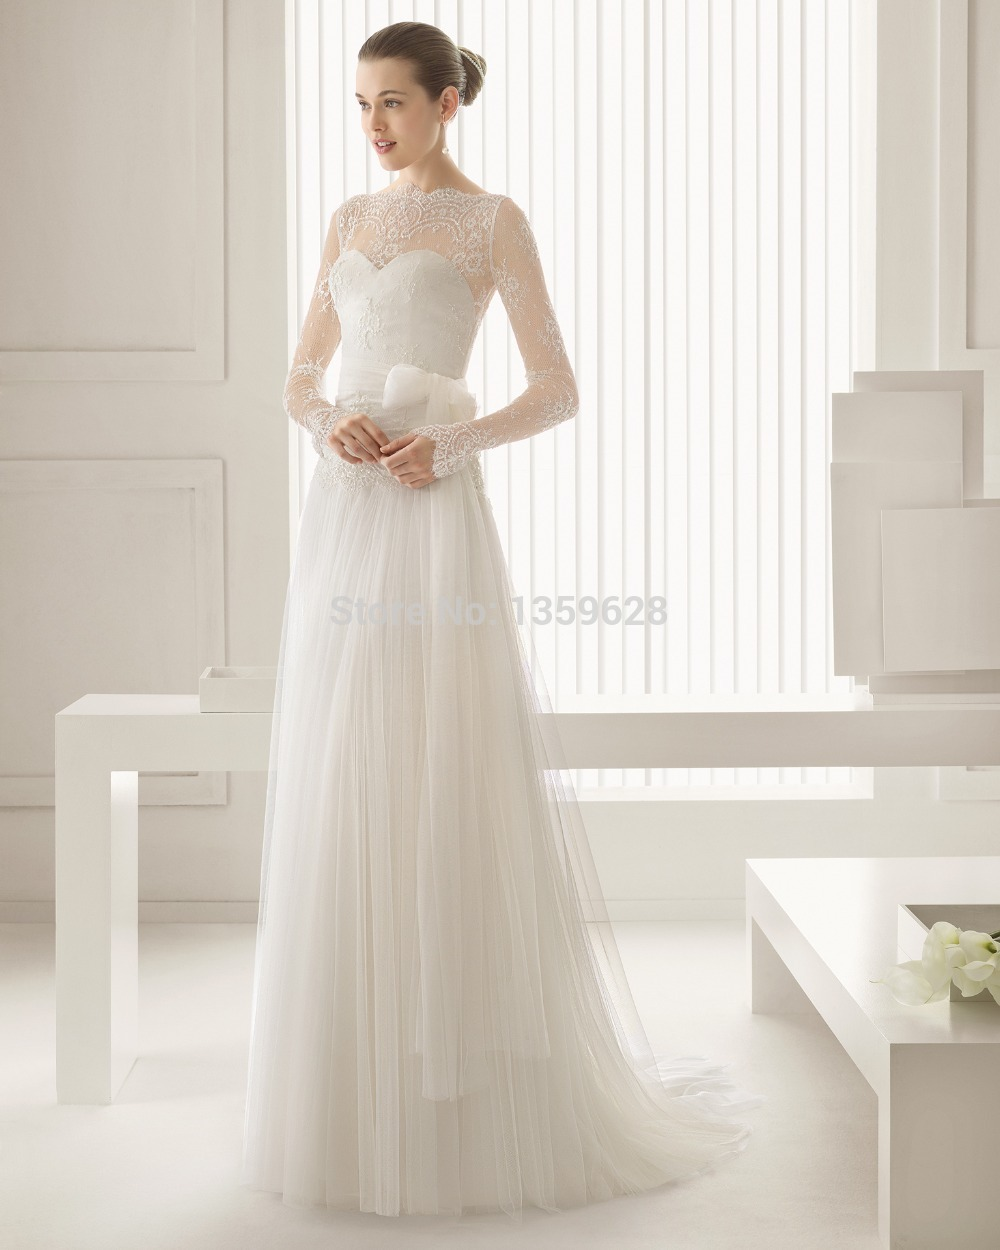 mori lee bridal wedding dress illusion wedding dress Mori Lee Bridal